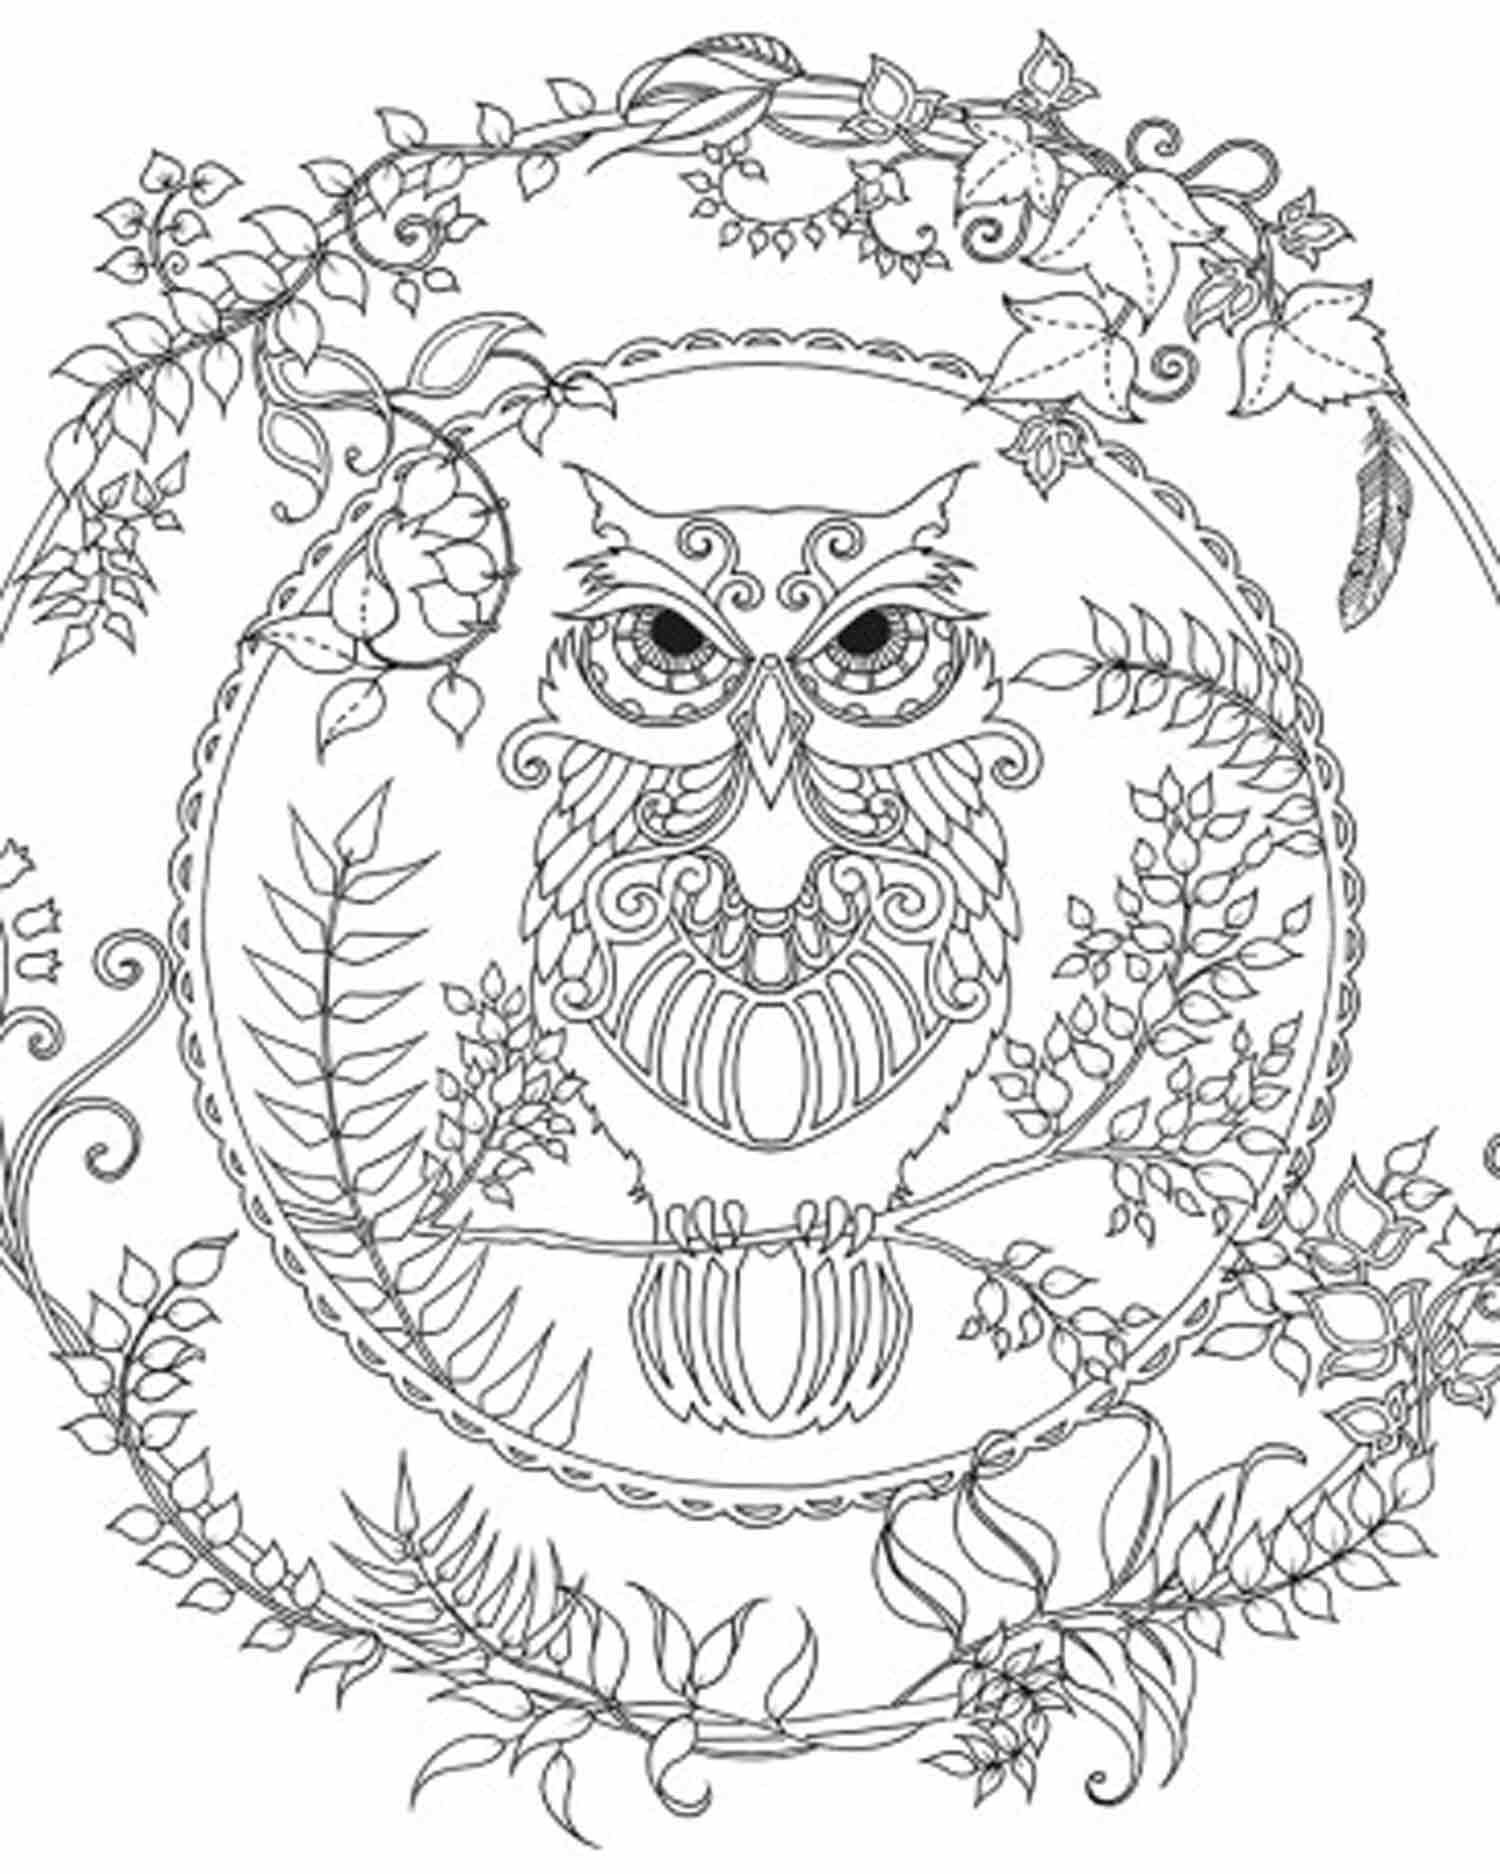 1500x1874 Brightbird Free Adult Coloring Pages Art Stuff